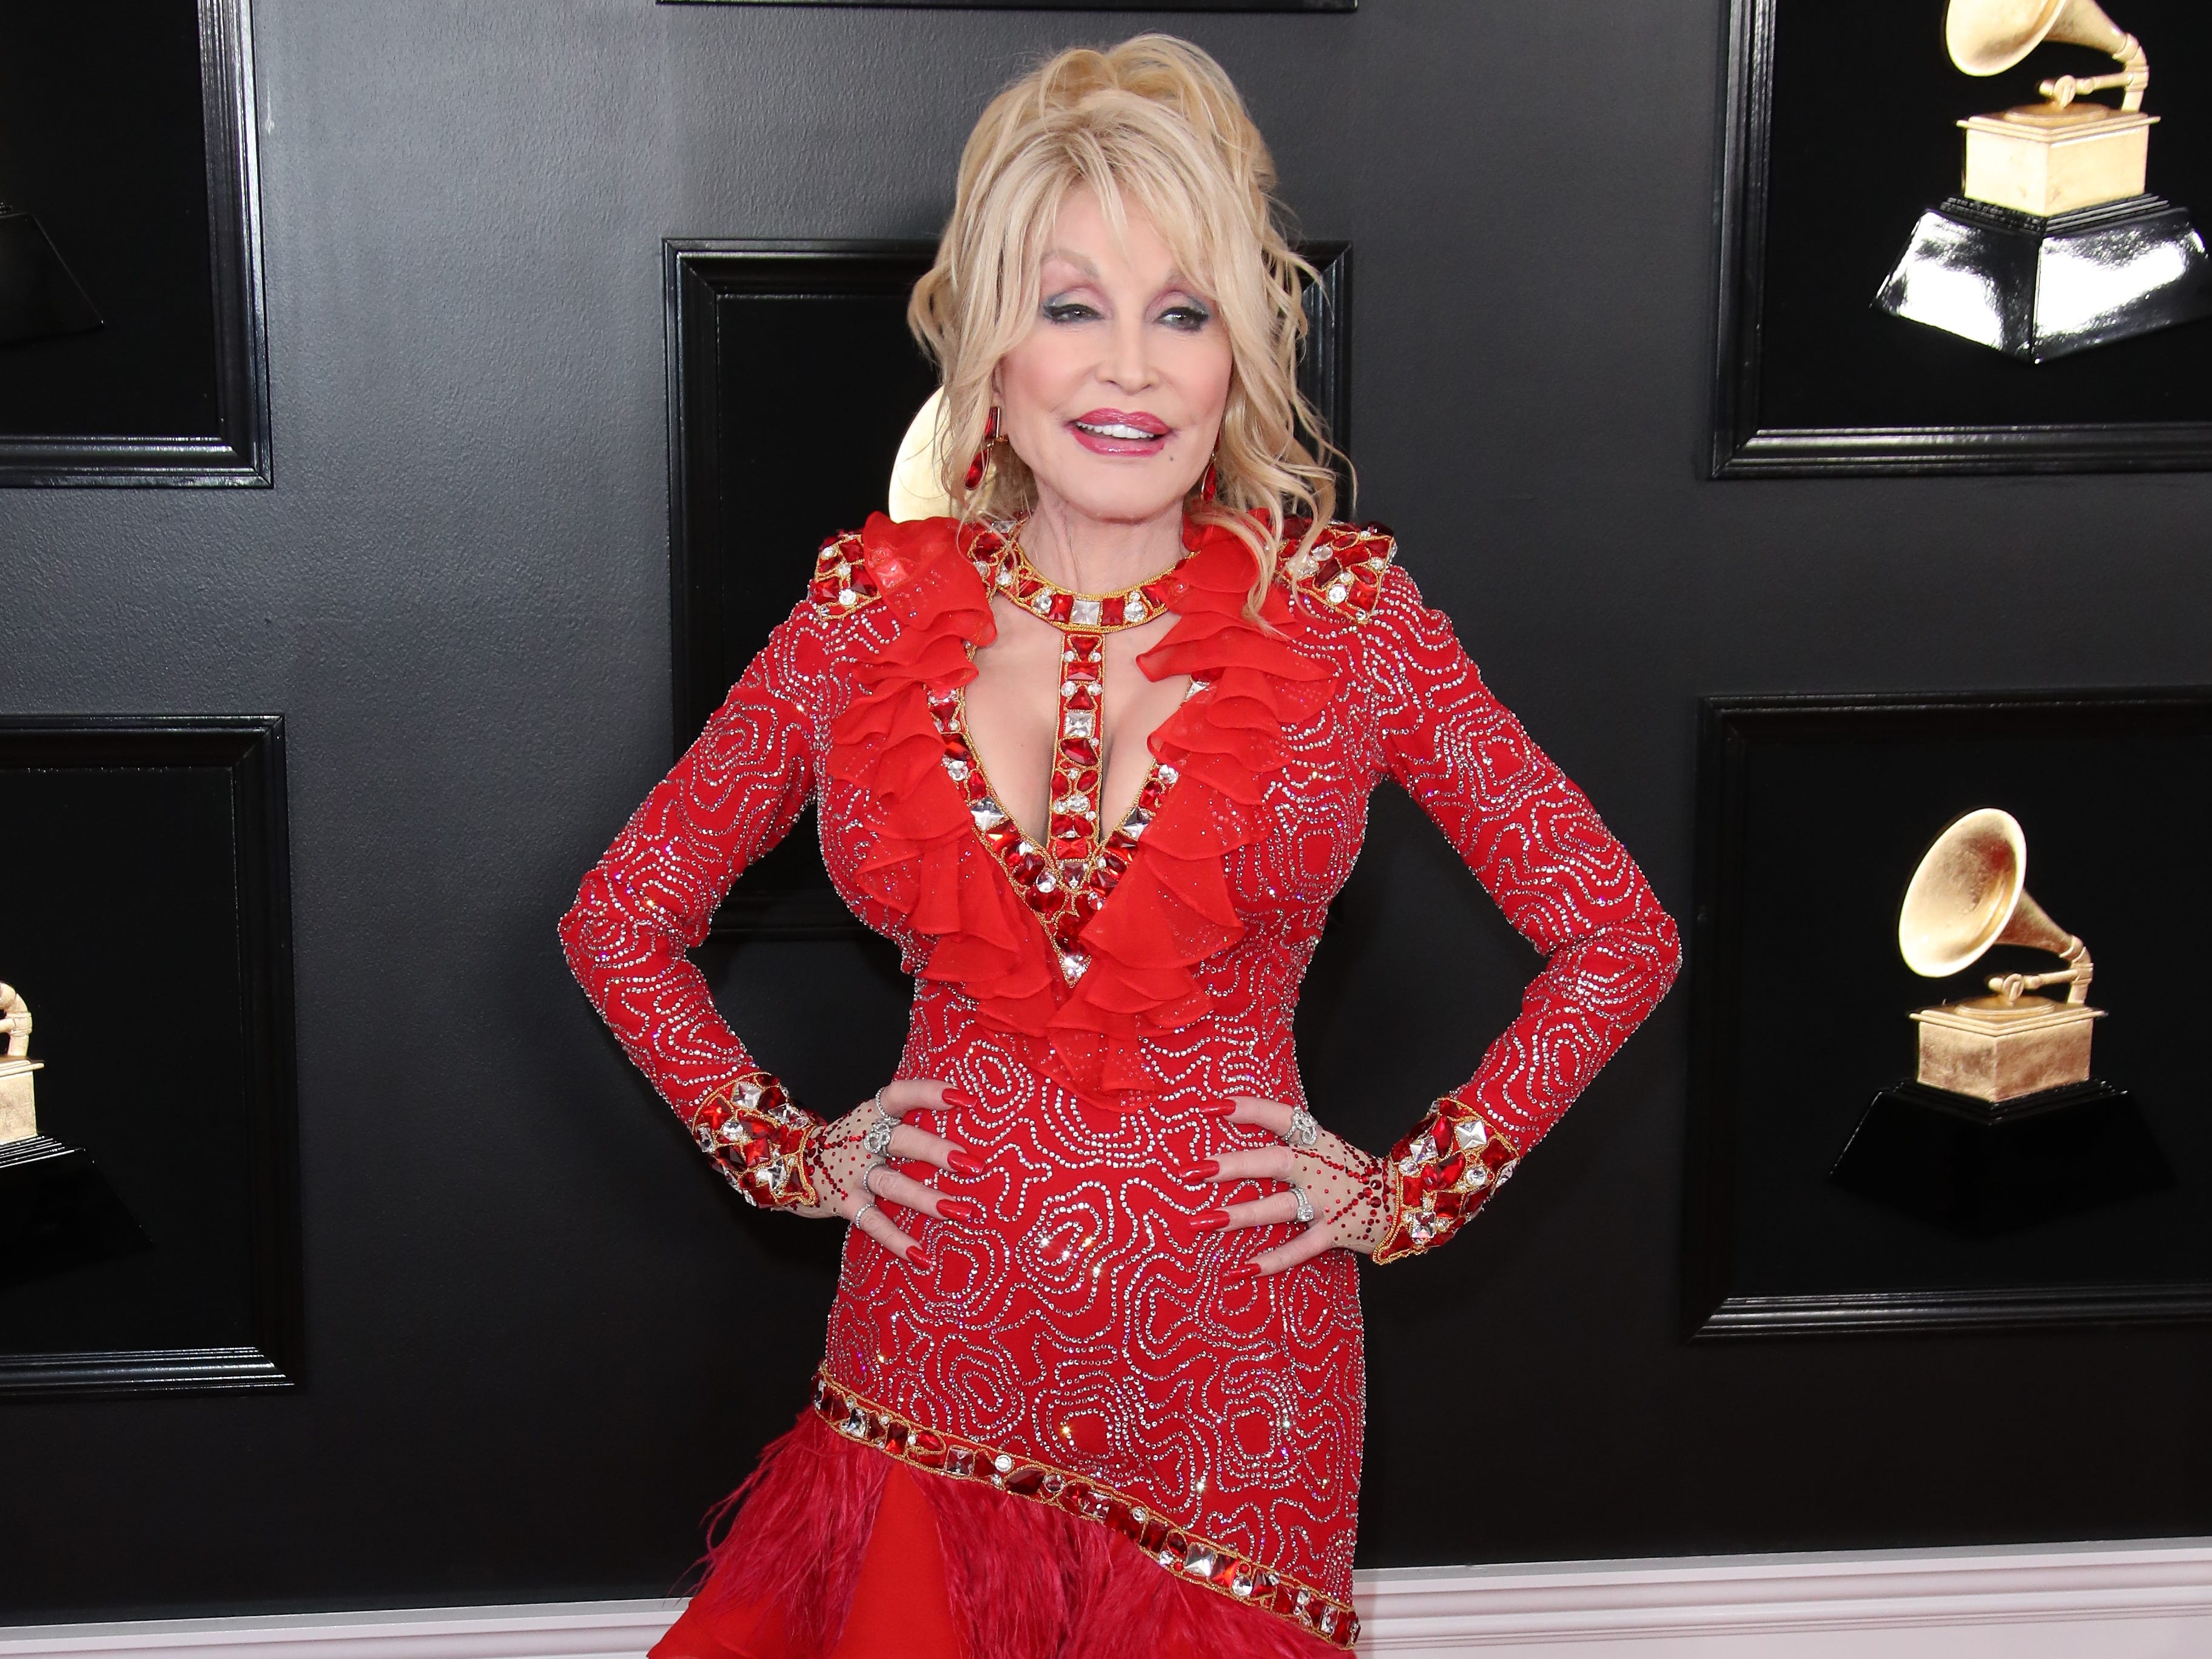 Dolly Parton, matching the Grammys carpet in bright red, lead the crowd in a Dolly sing-along.